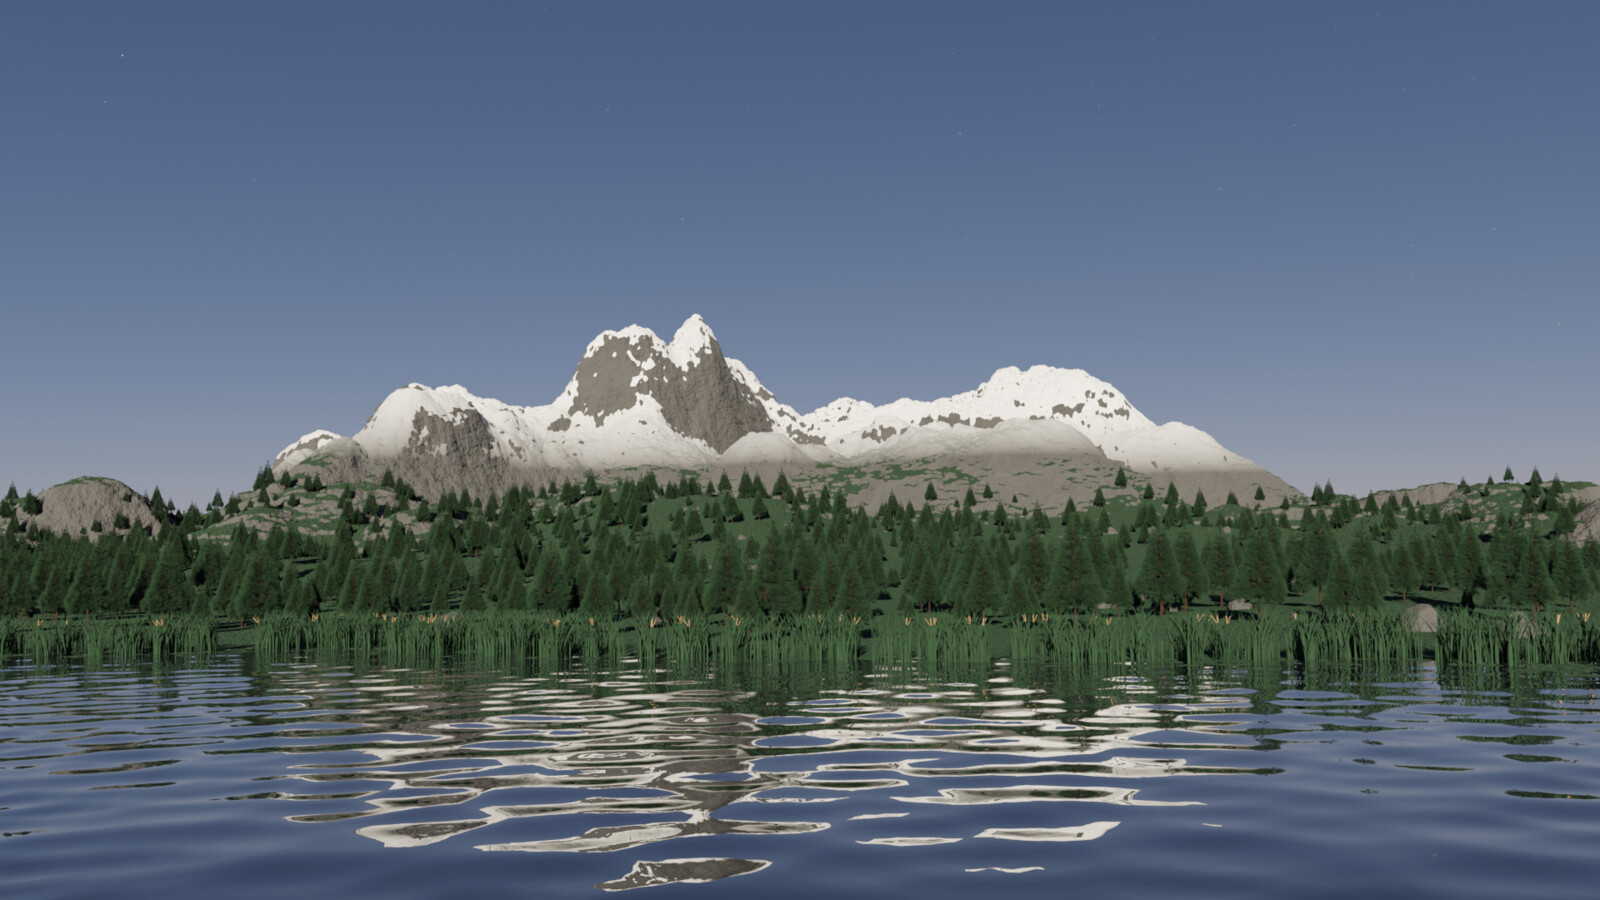 Every lake needs rushes and reeds, so I built a collection of cattail reed models and scattered them, using a weight painted vertex group to control the particle system.